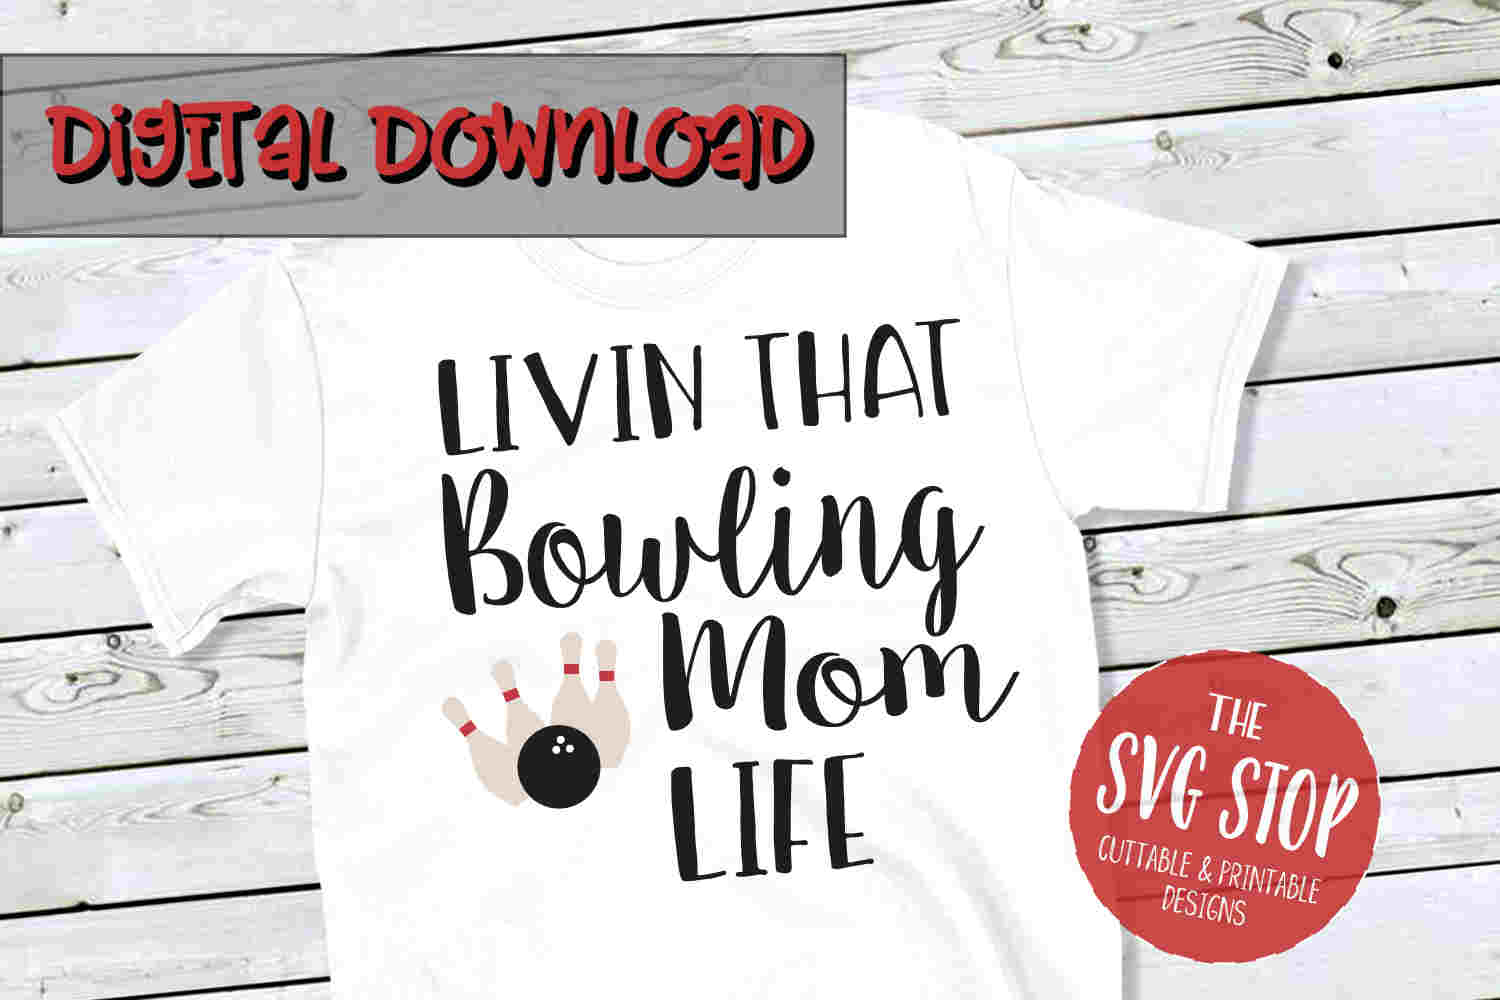 Bowling Mom Life -SVG, PNG, DXF example image 1